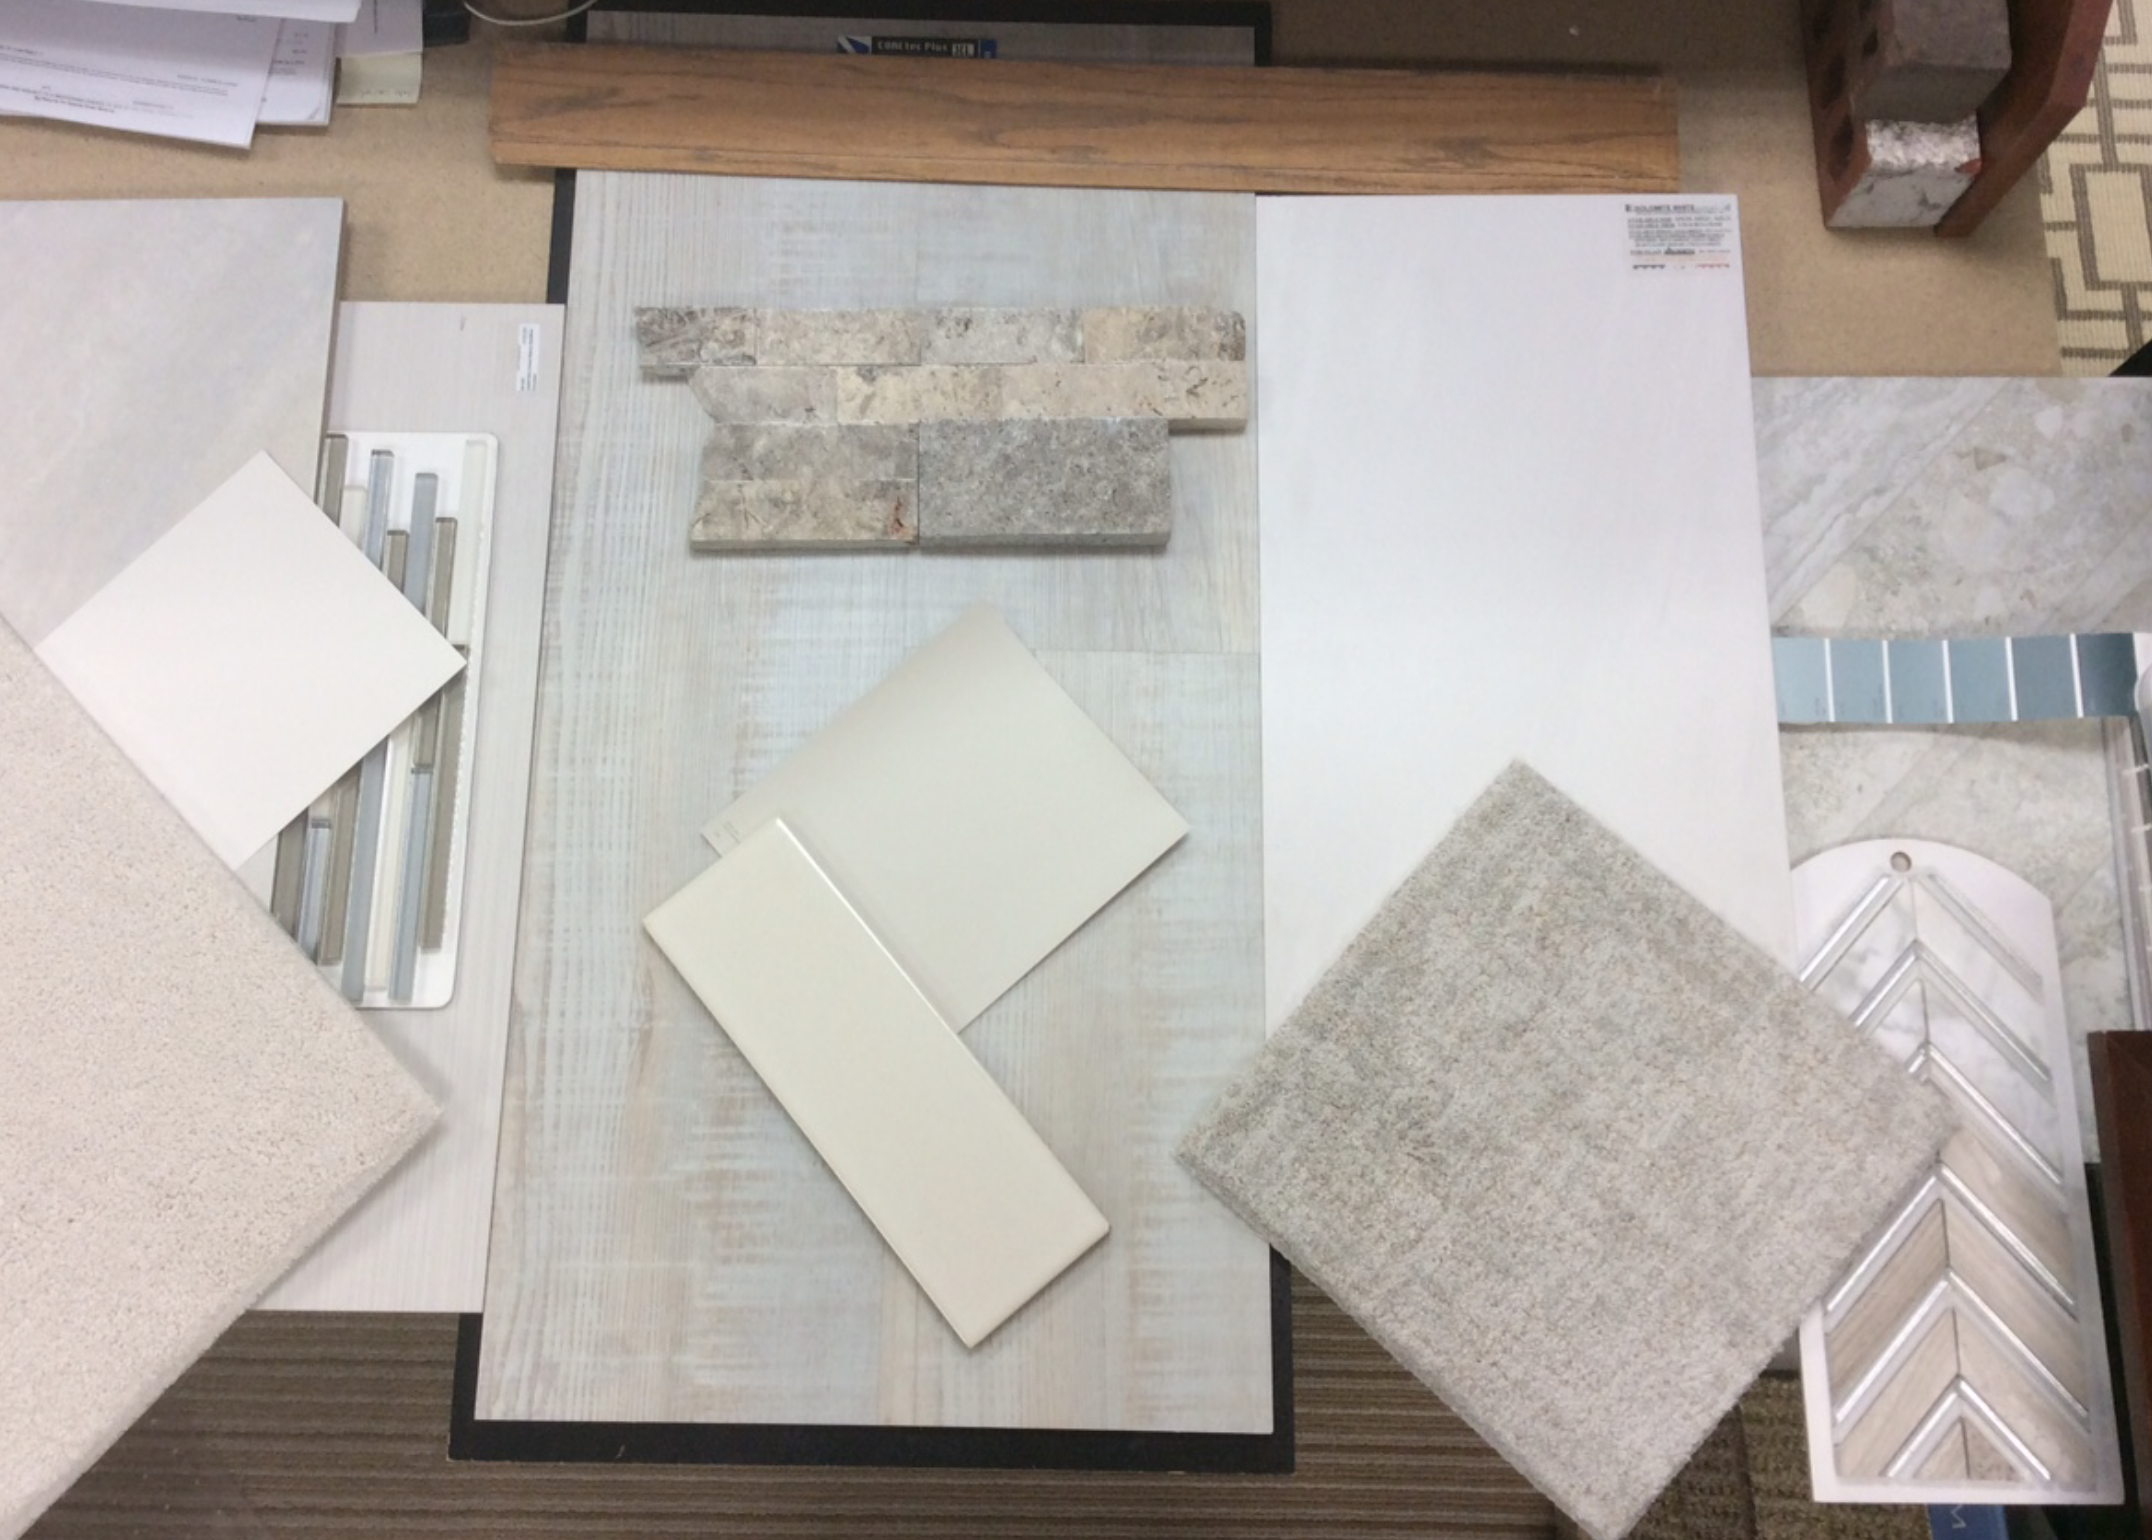 Swatches and samples for inspiration, H.J. Martin and Son